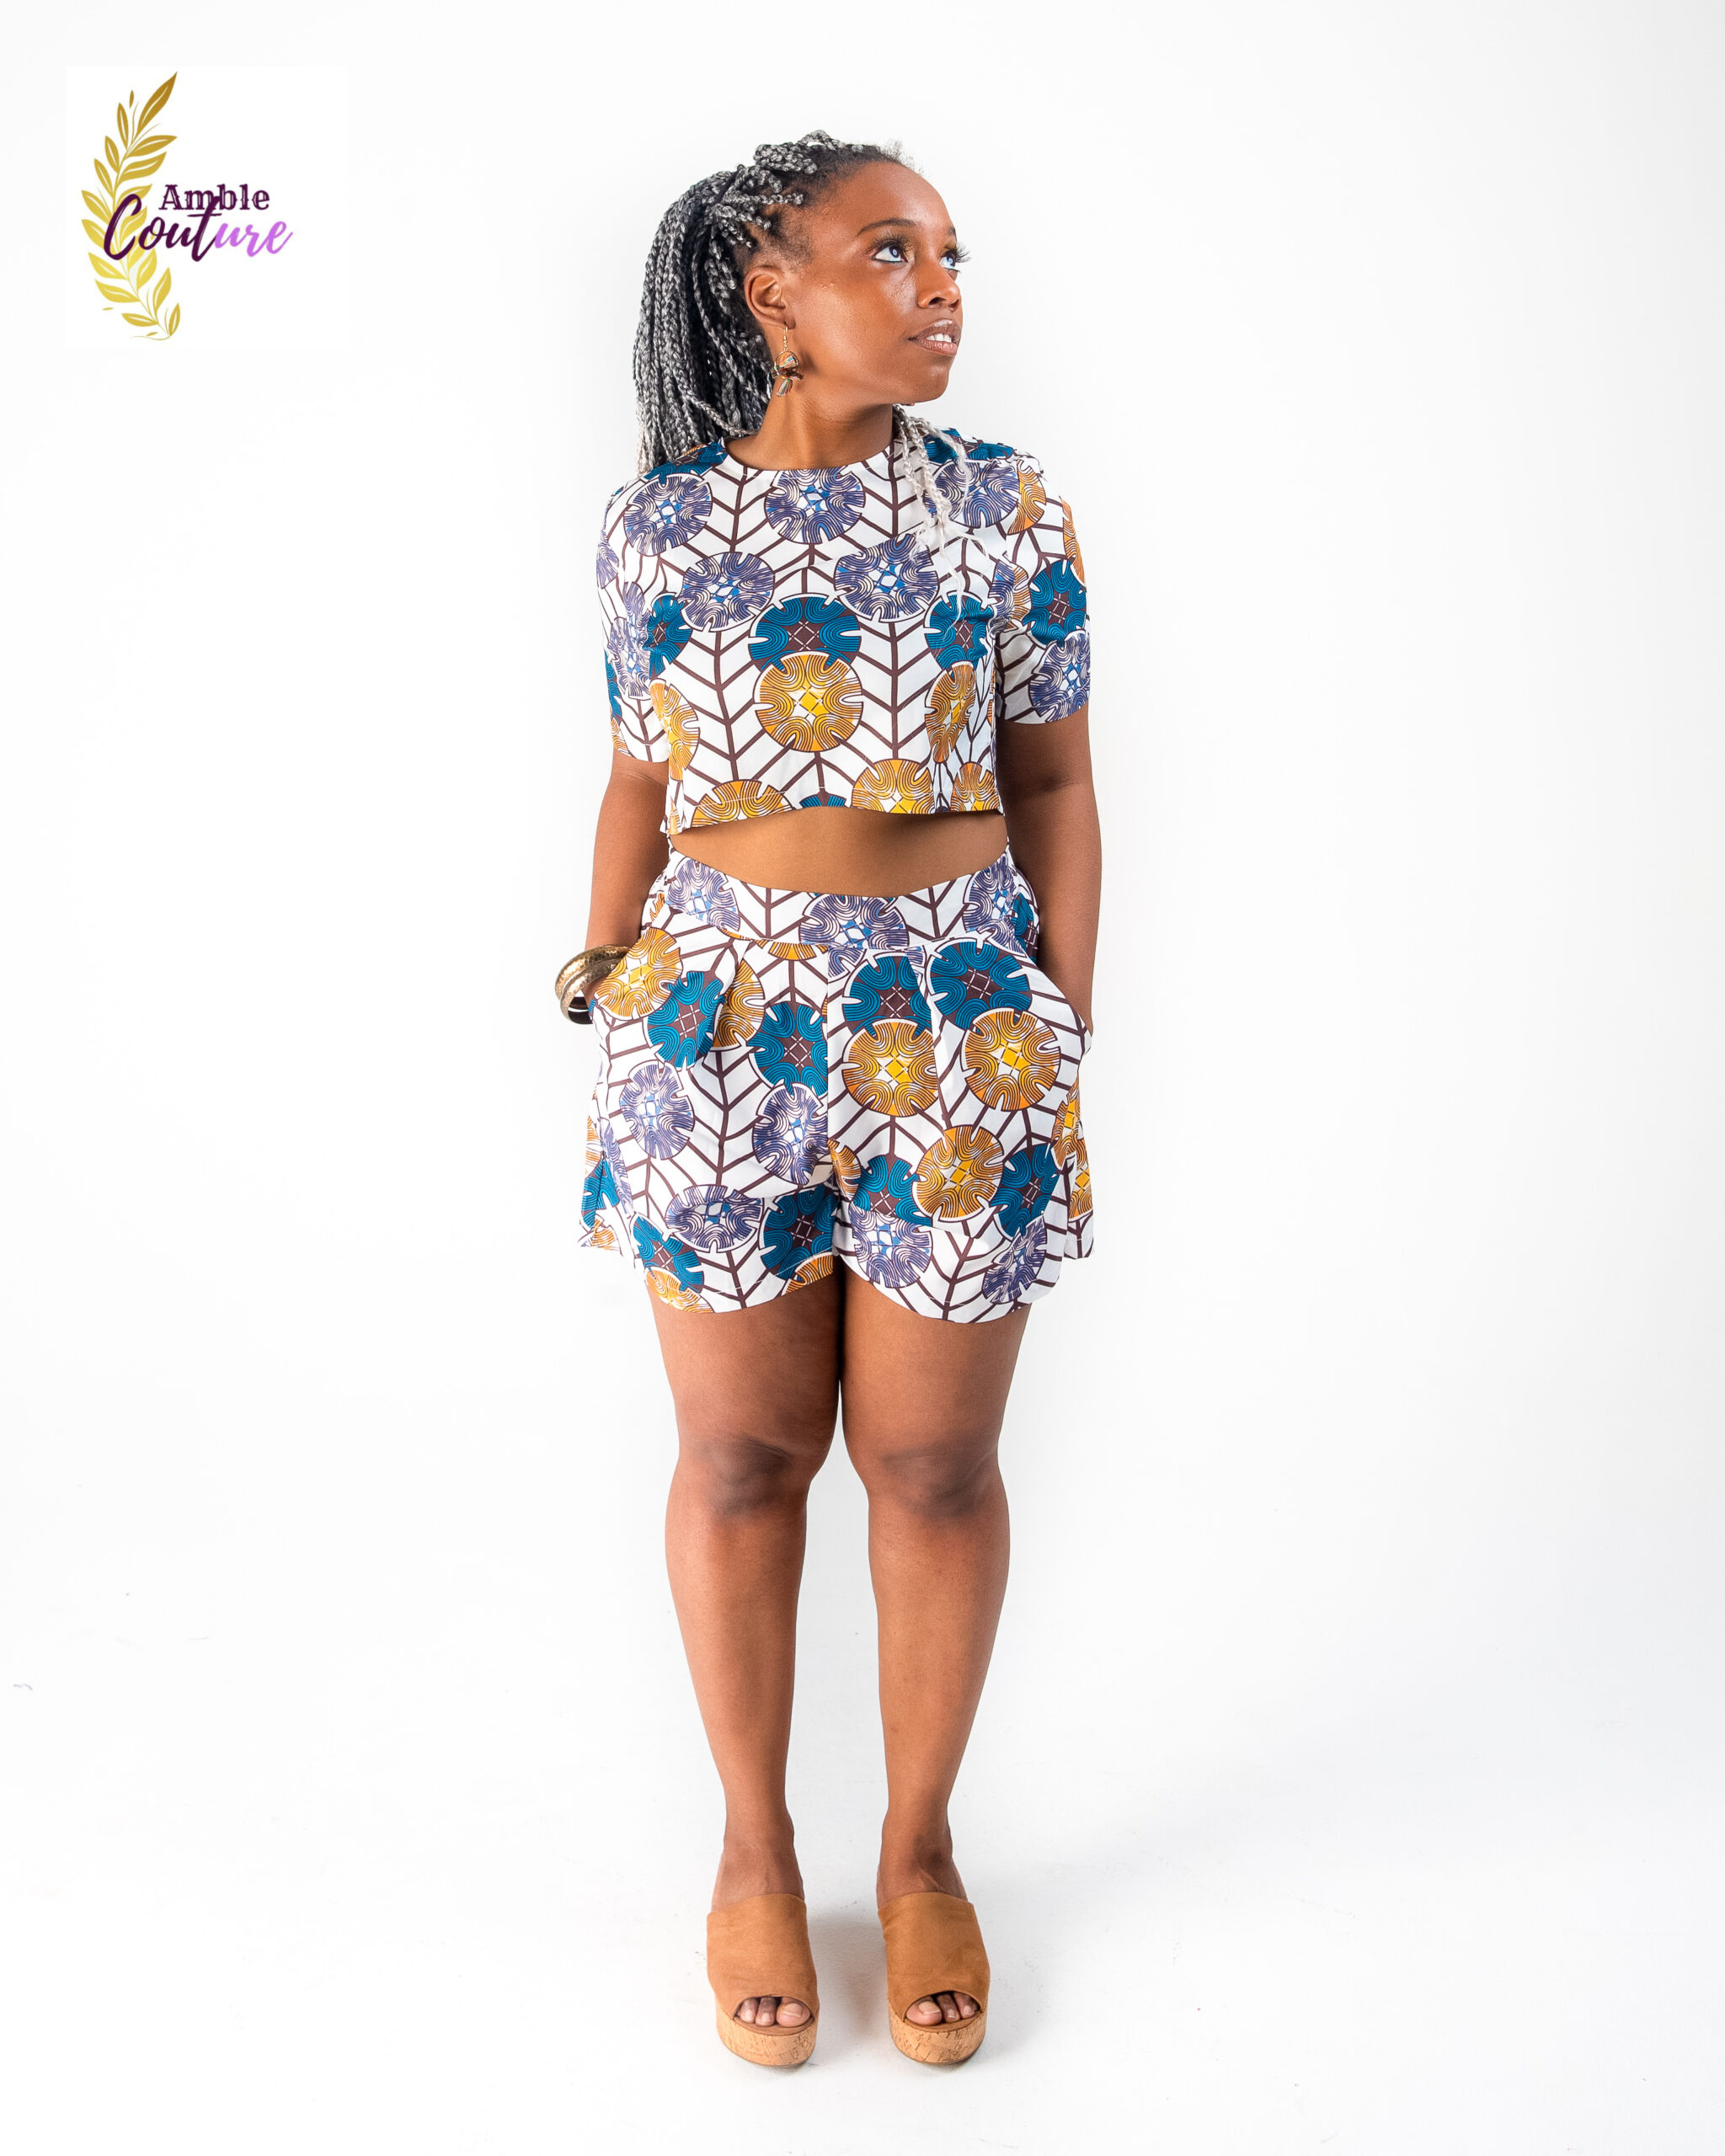 Amble Couture Crop Top and Pant